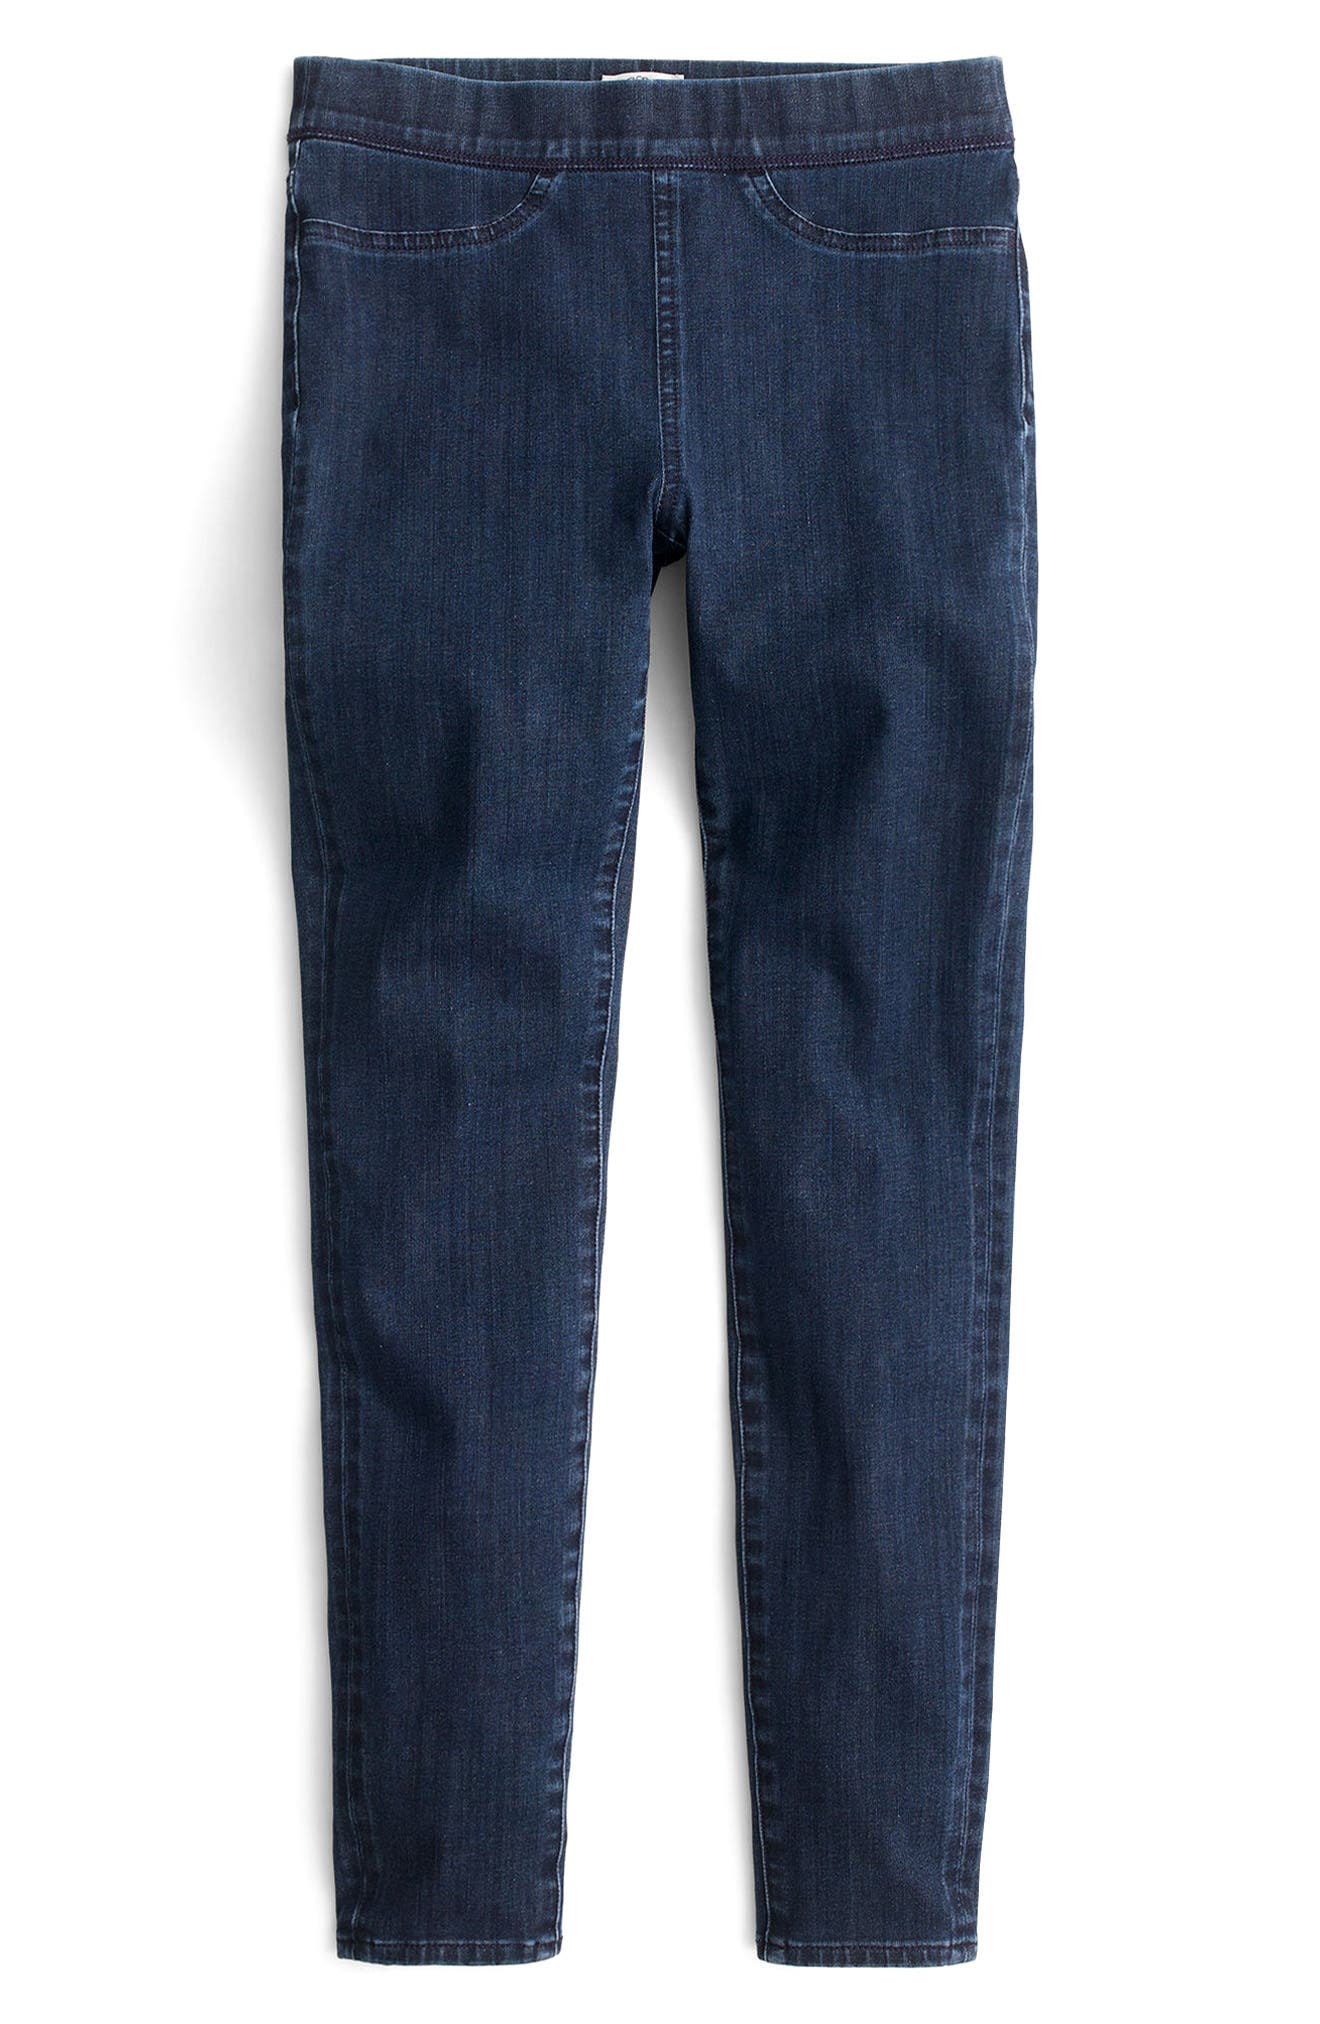 Pull-On Toothpick Indigo Jeans,                             Alternate thumbnail 3, color,                             400